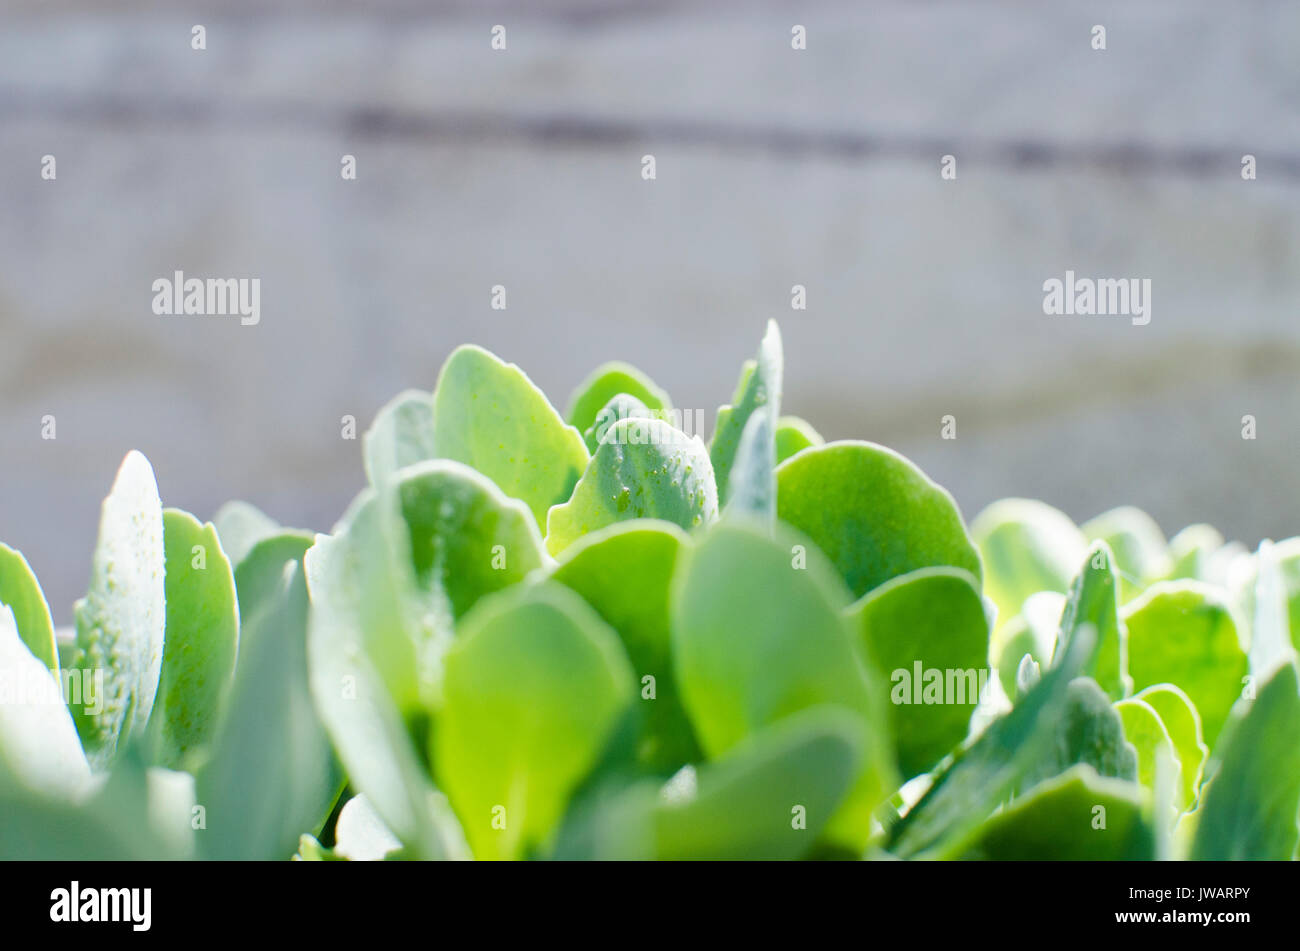 Green succulent sedum plant with simple landscape orientation growing and shining under the spring sun.  Light and airy image. - Stock Image